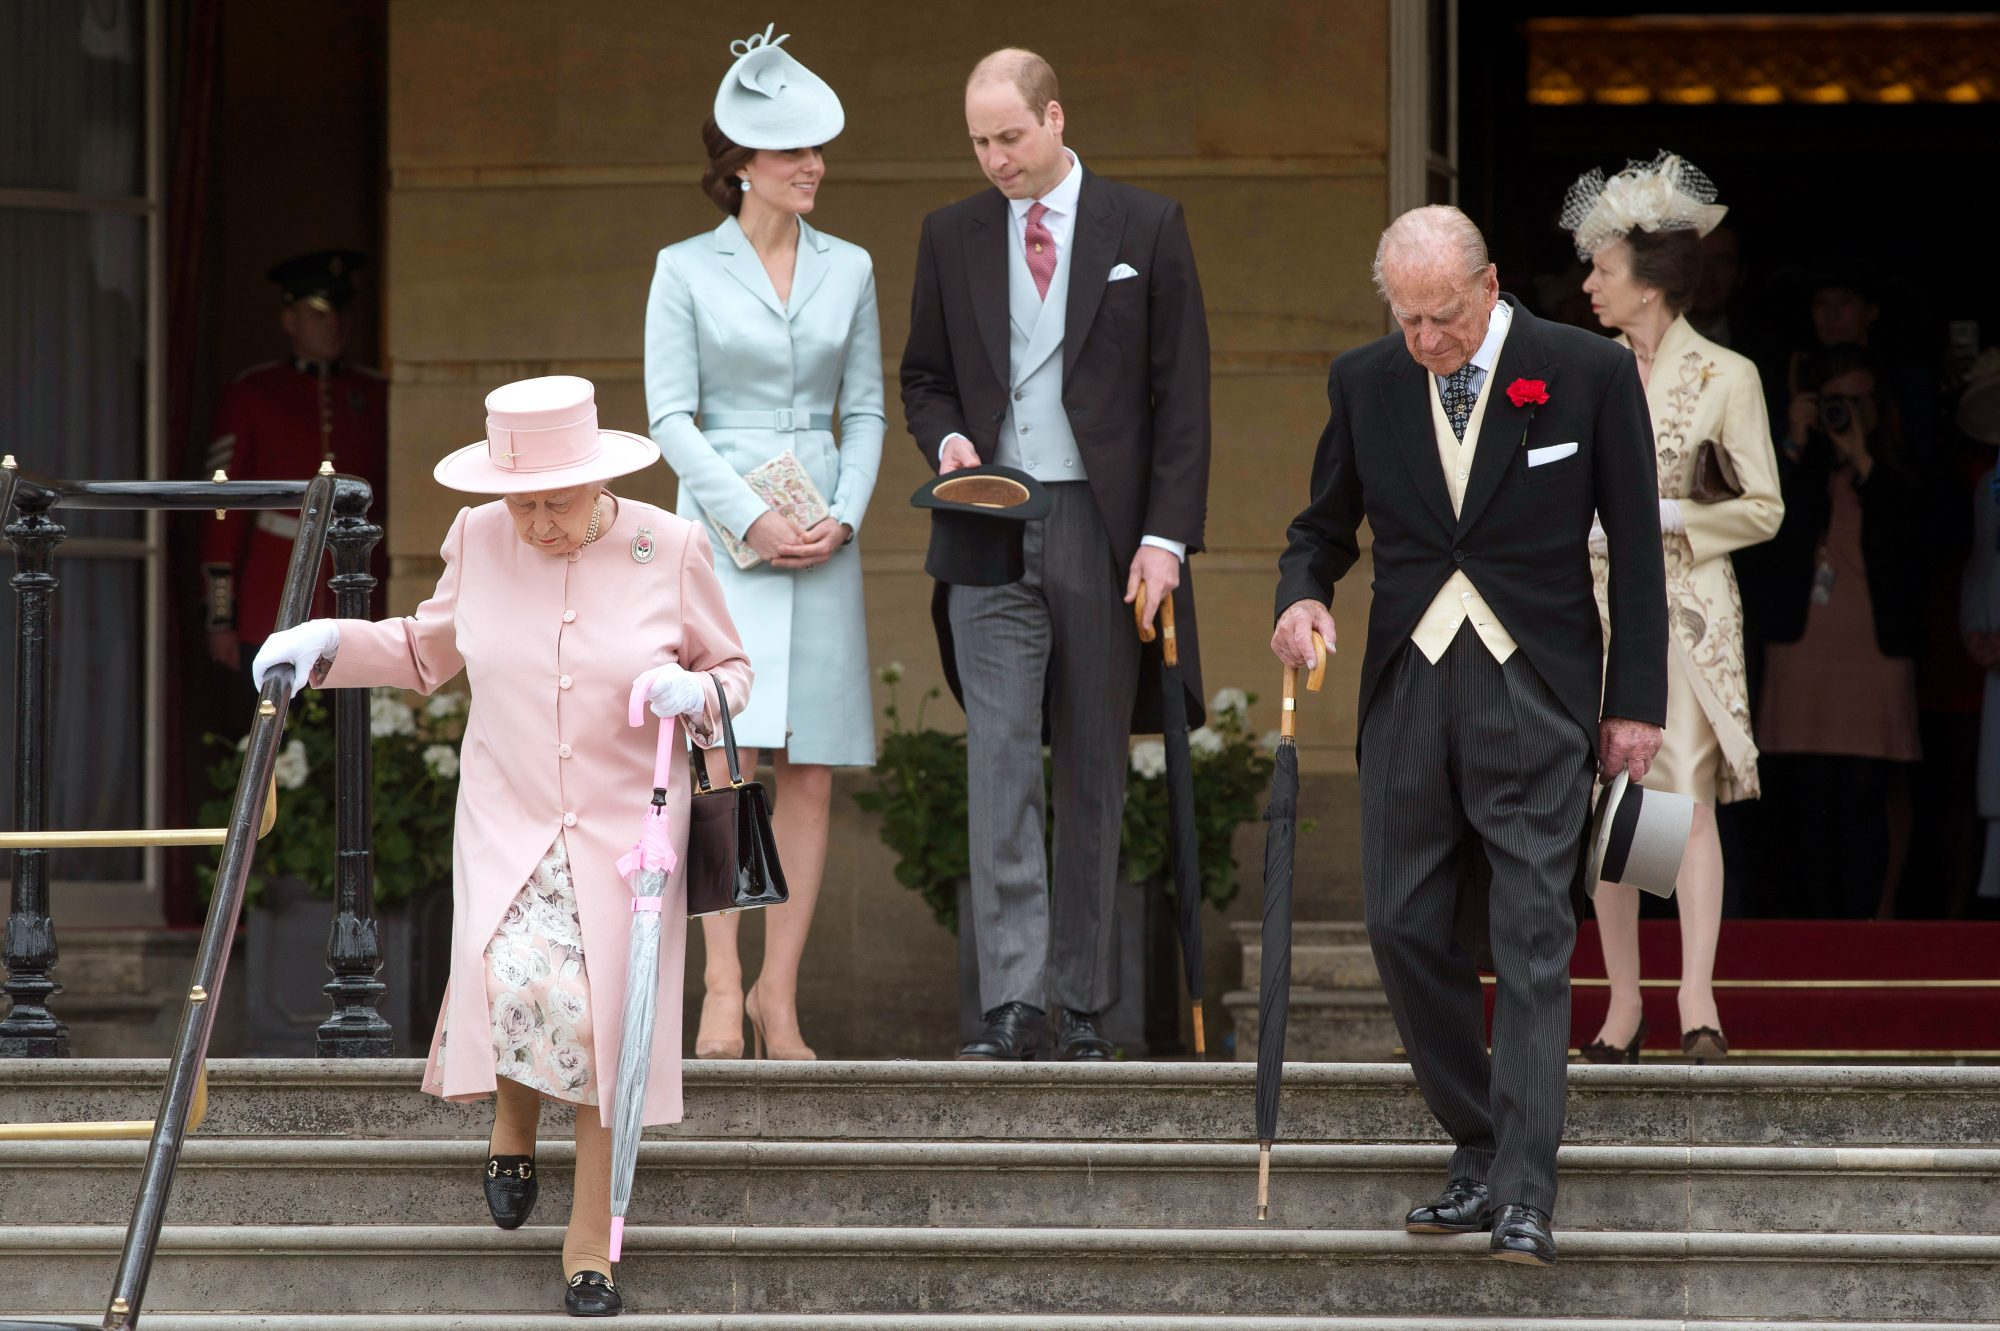 Garden Party - Queen Will Kate - Embed